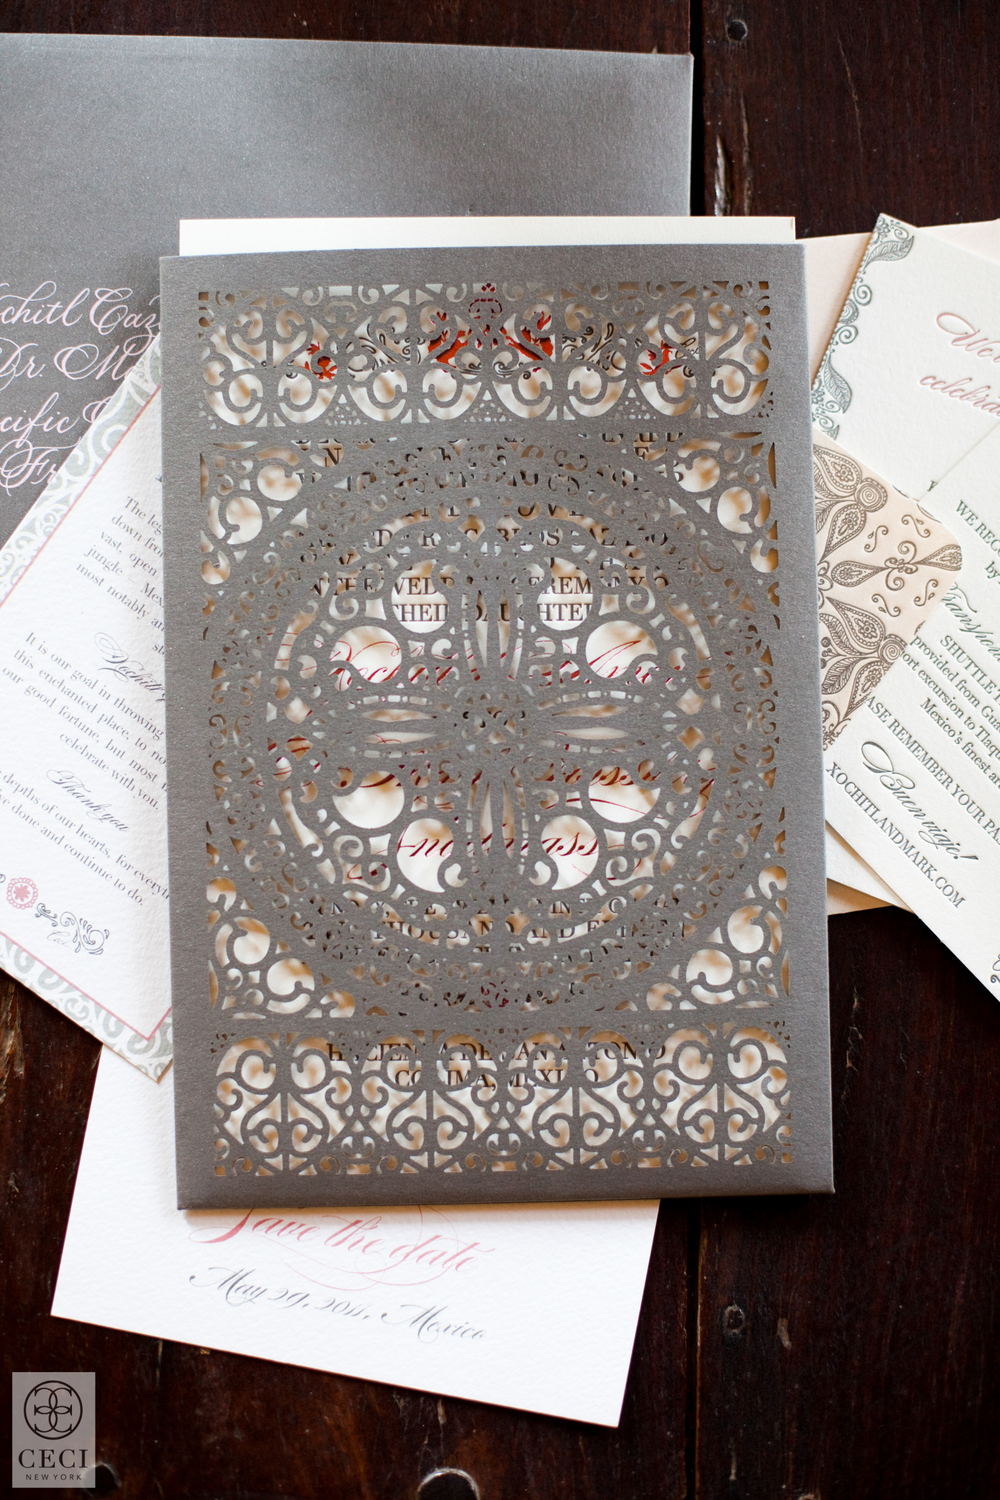 Ceci_New_York_Custom_Luxury_Wedding_LaserCut_Stationery_Personalized_Couture_Foil_Stamping_Mexico_Otomi_Chic_-7.jpg